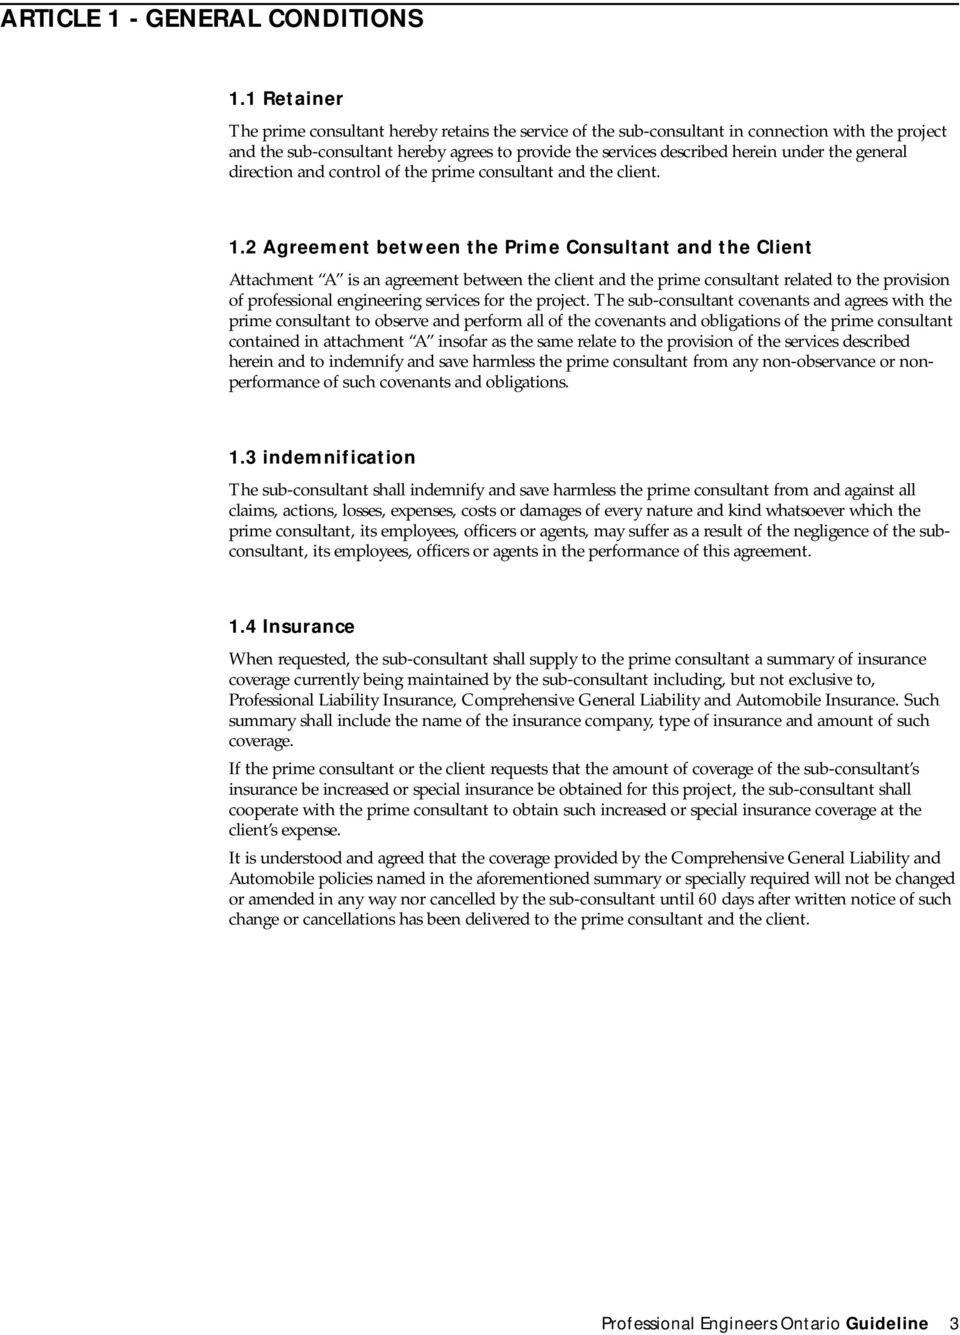 professional engineers act ontario pdf